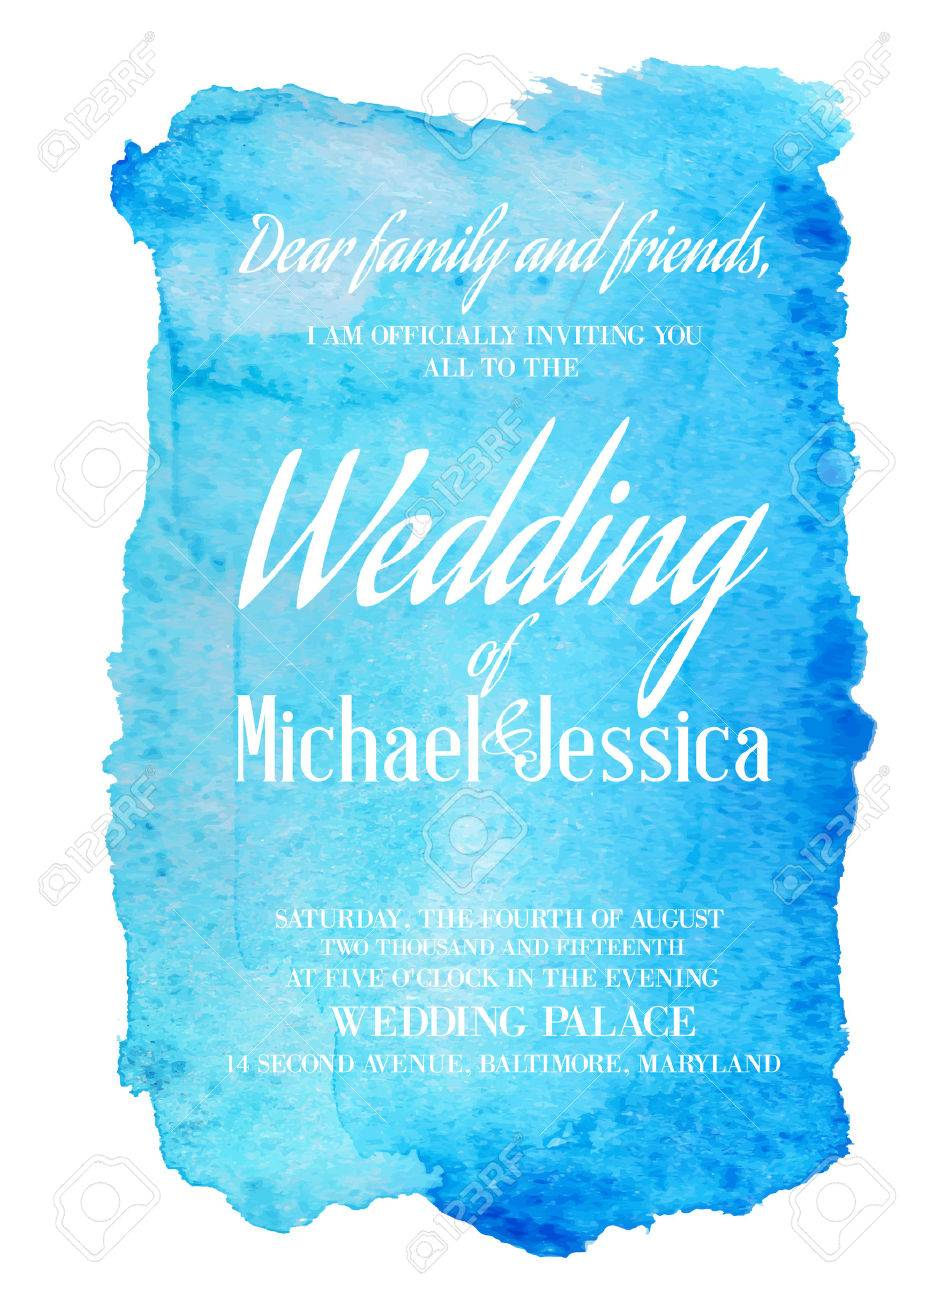 Wedding Invitation Card With Blue Watercolor Blot On Backdrop – Blue Wedding Invitation Cards